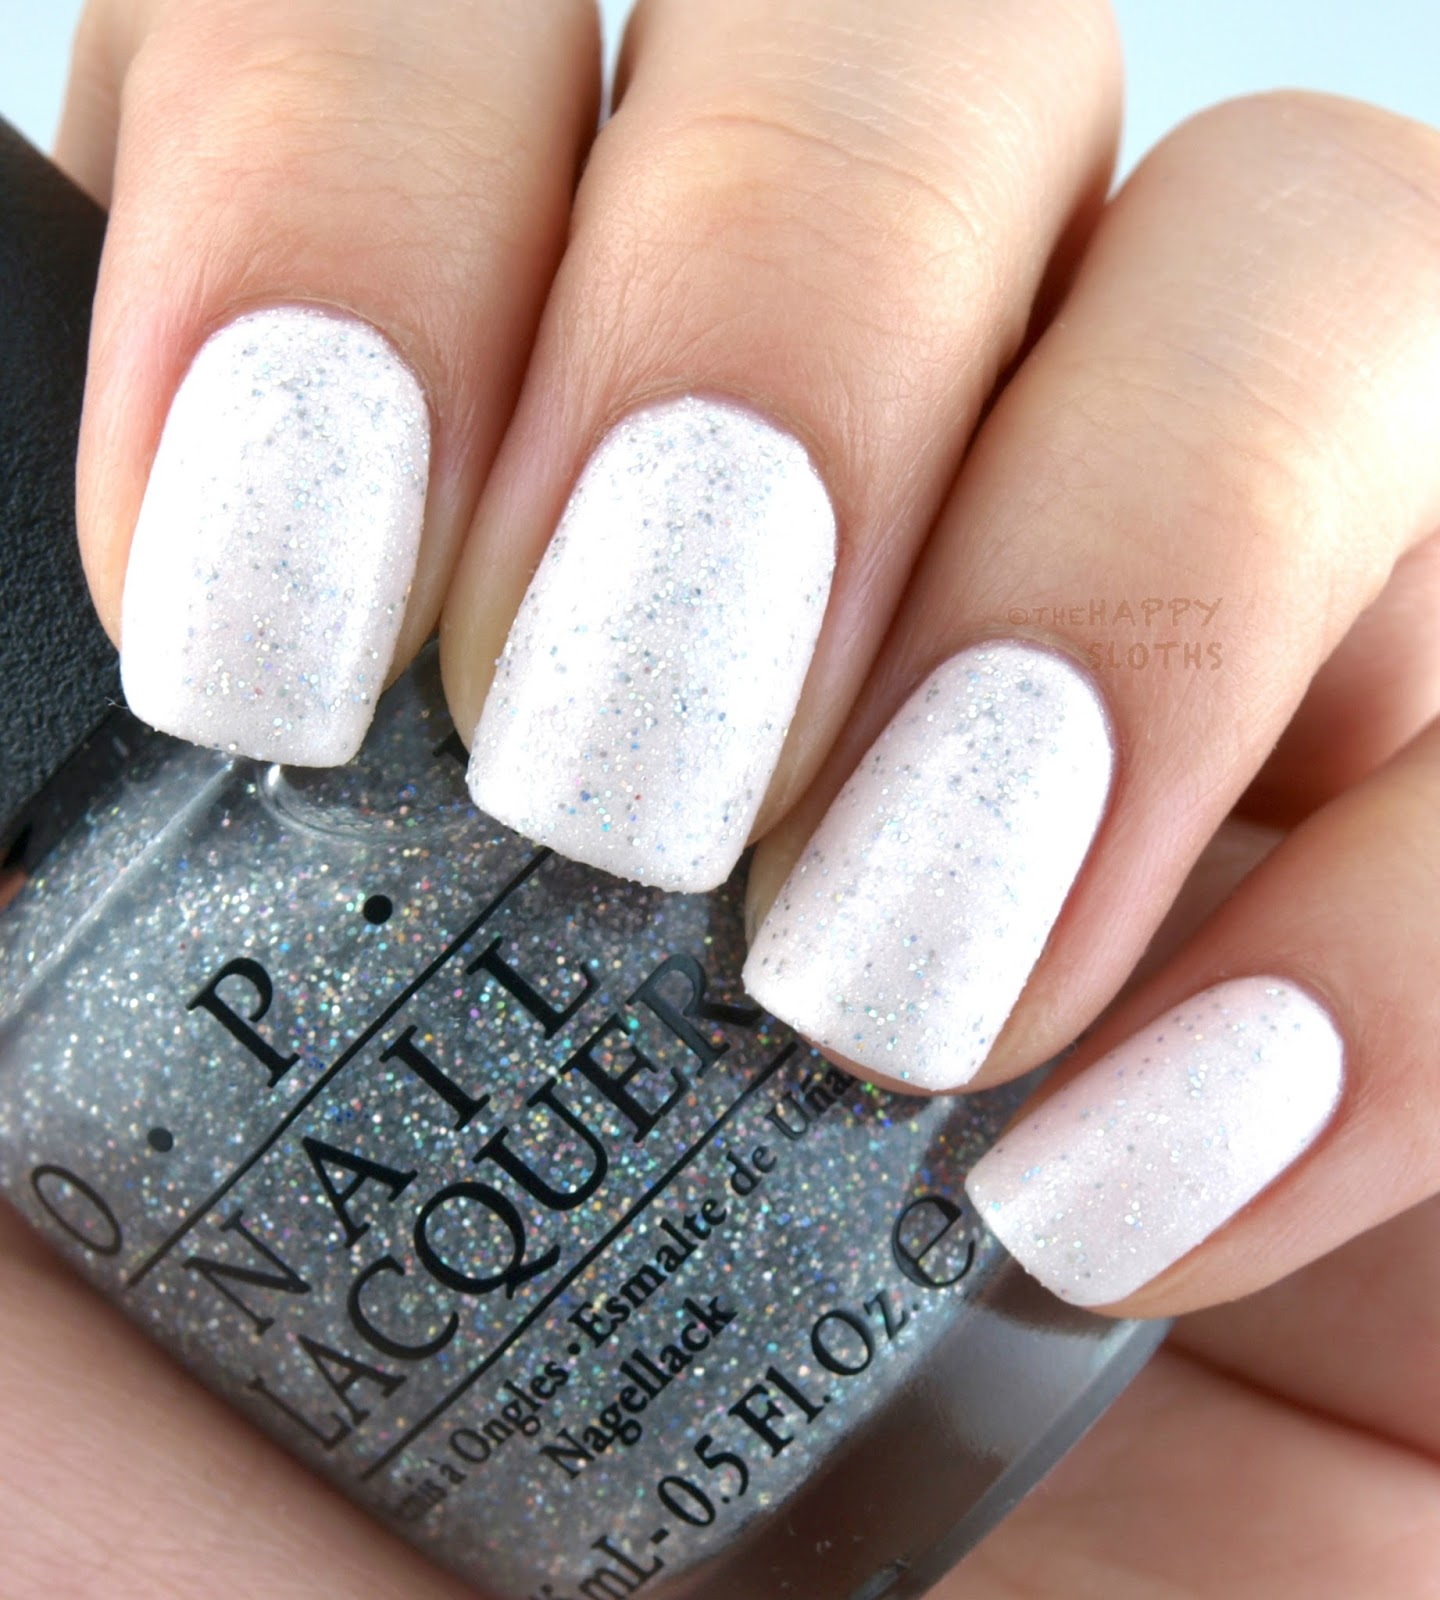 OPI Holiday 2016 Breakfast at Tiffany's Collection: Review and Swatches